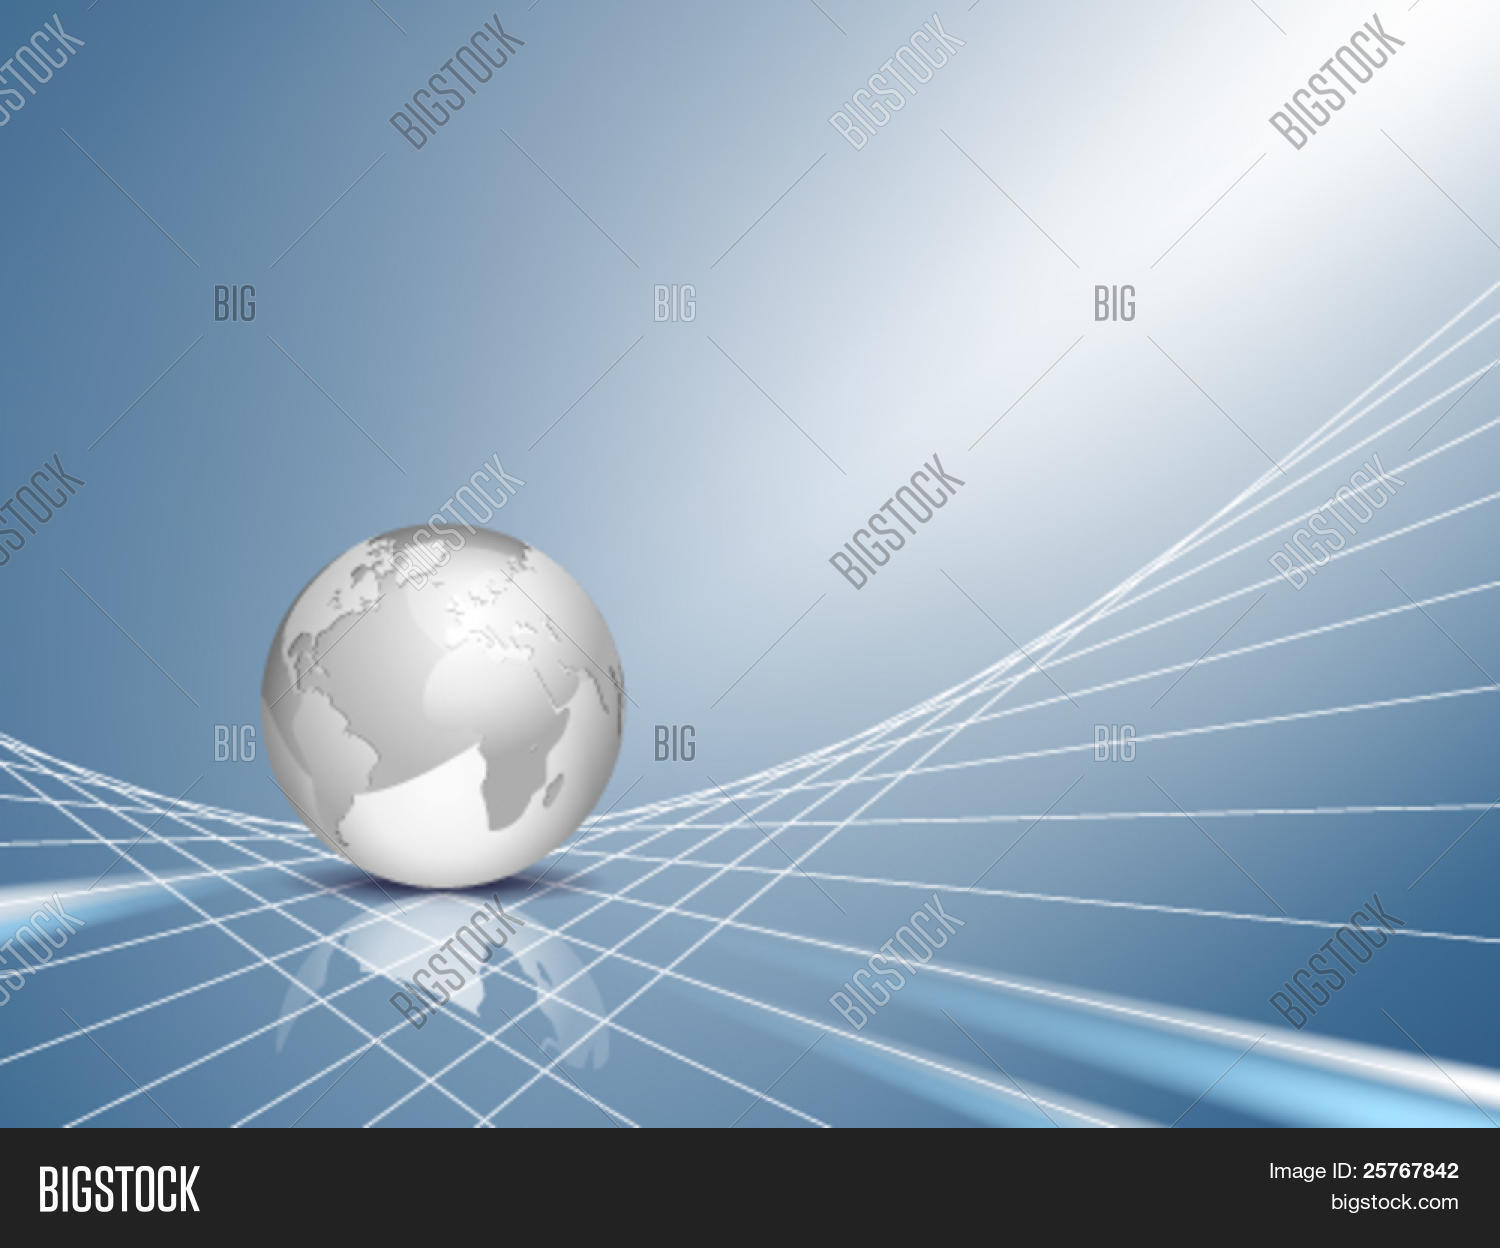 Vector business vector photo free trial bigstock vector business background design with light silver grey 3d globe world map with blue gumiabroncs Choice Image